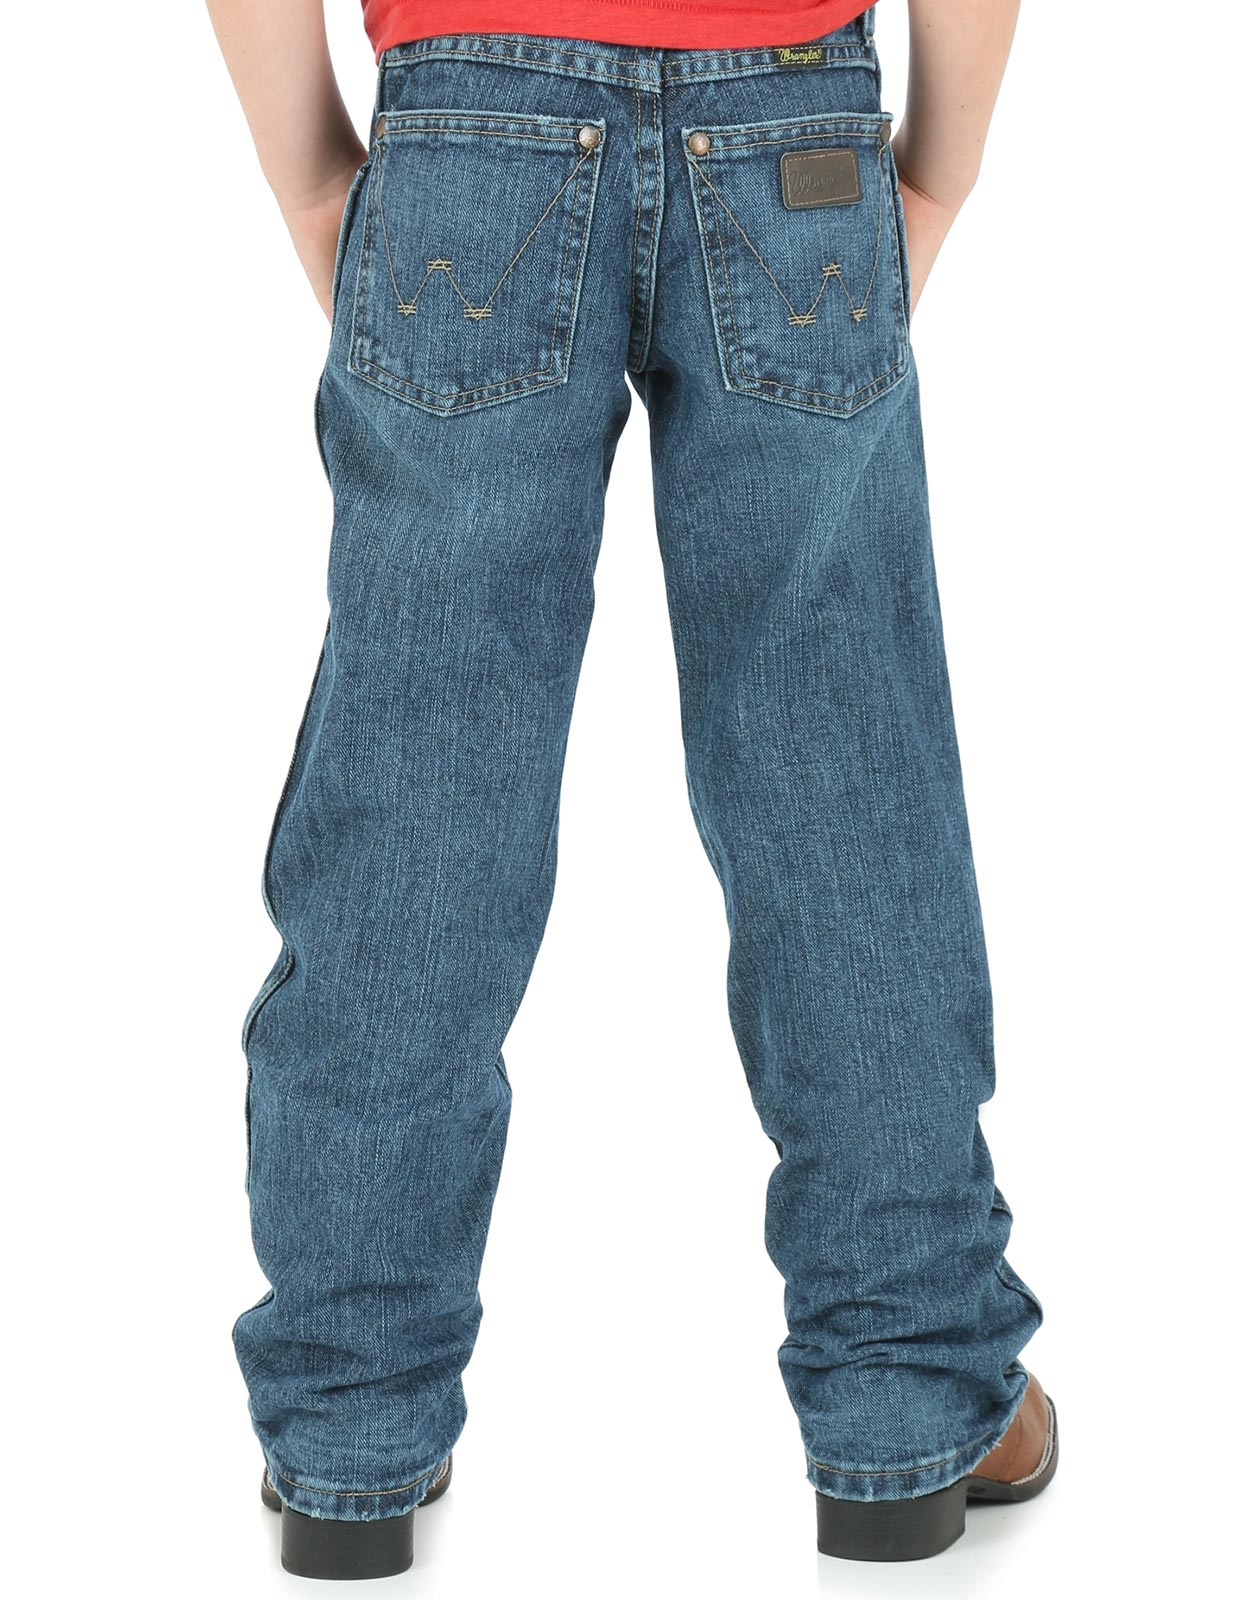 Wrangler Boy's Retro Low Rise Relaxed Fit Straight Leg Jeans (Sizes 1T-7) - Everyday Blue